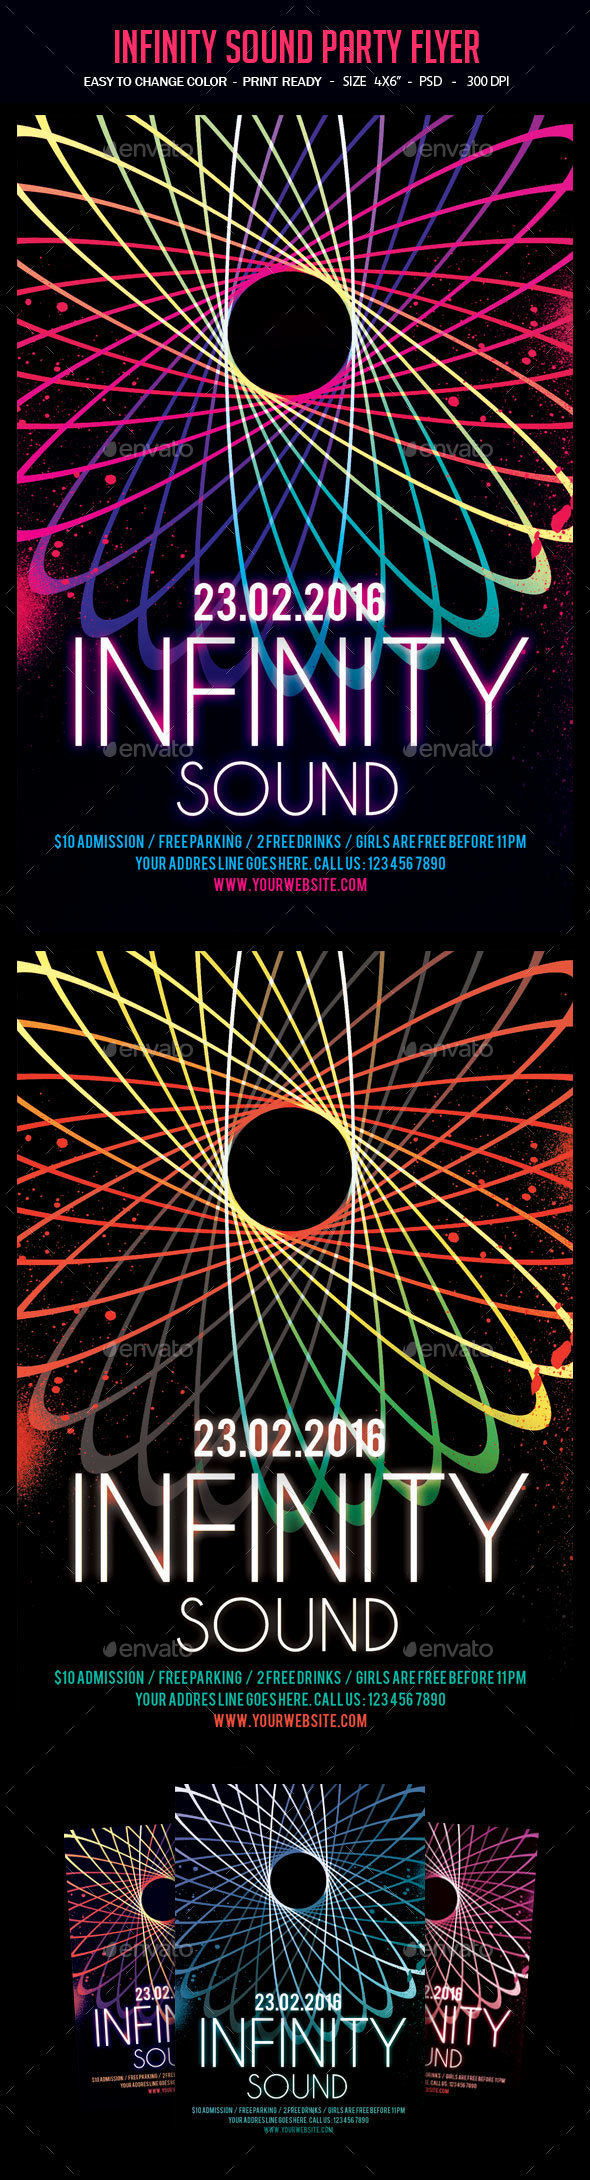 Infinity Sound Party Flyer - Clubs & Parties Events